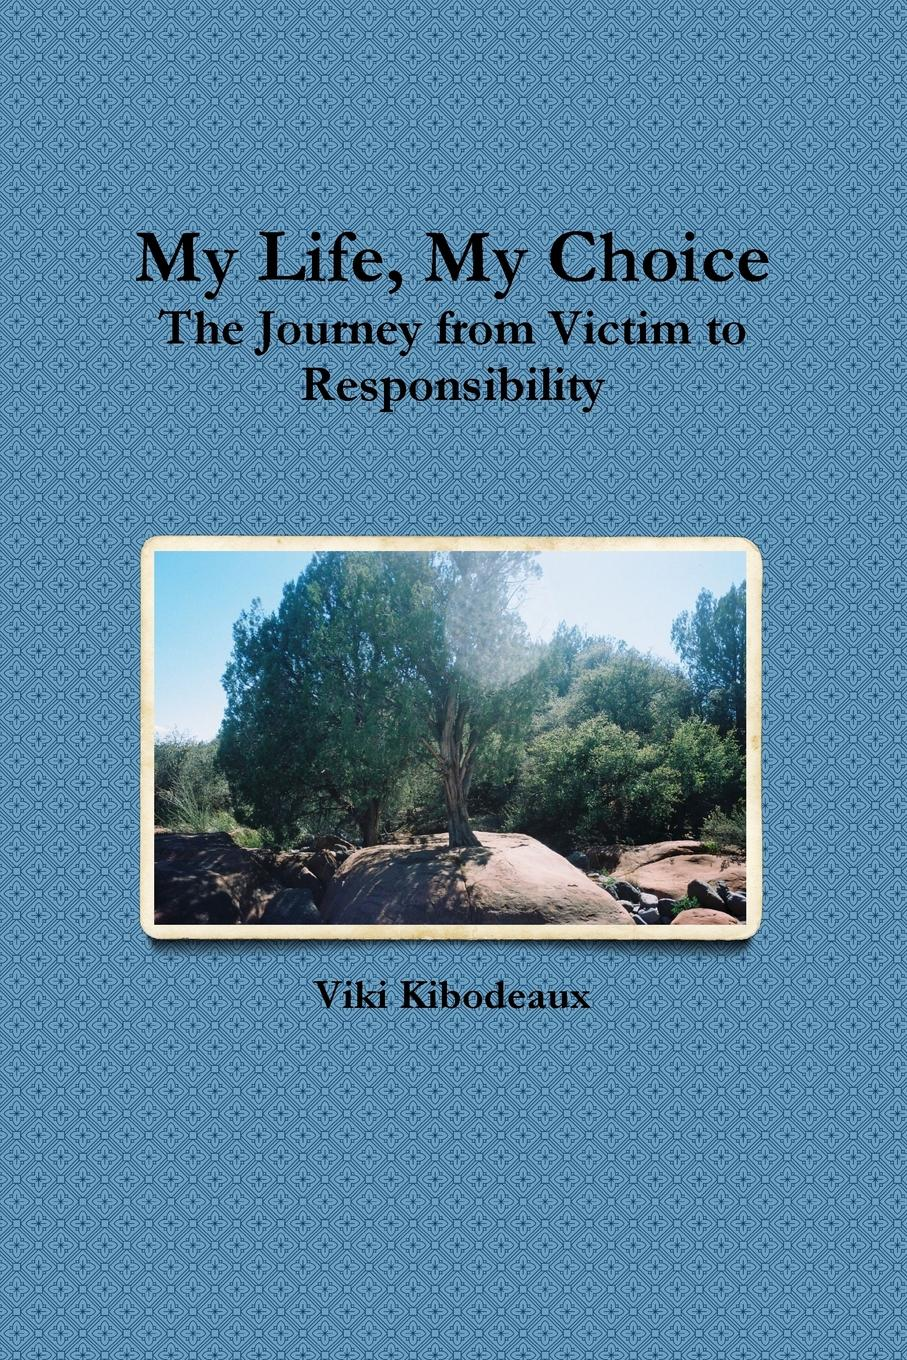 Viki Kibodeaux My Life, My Choice this is my life